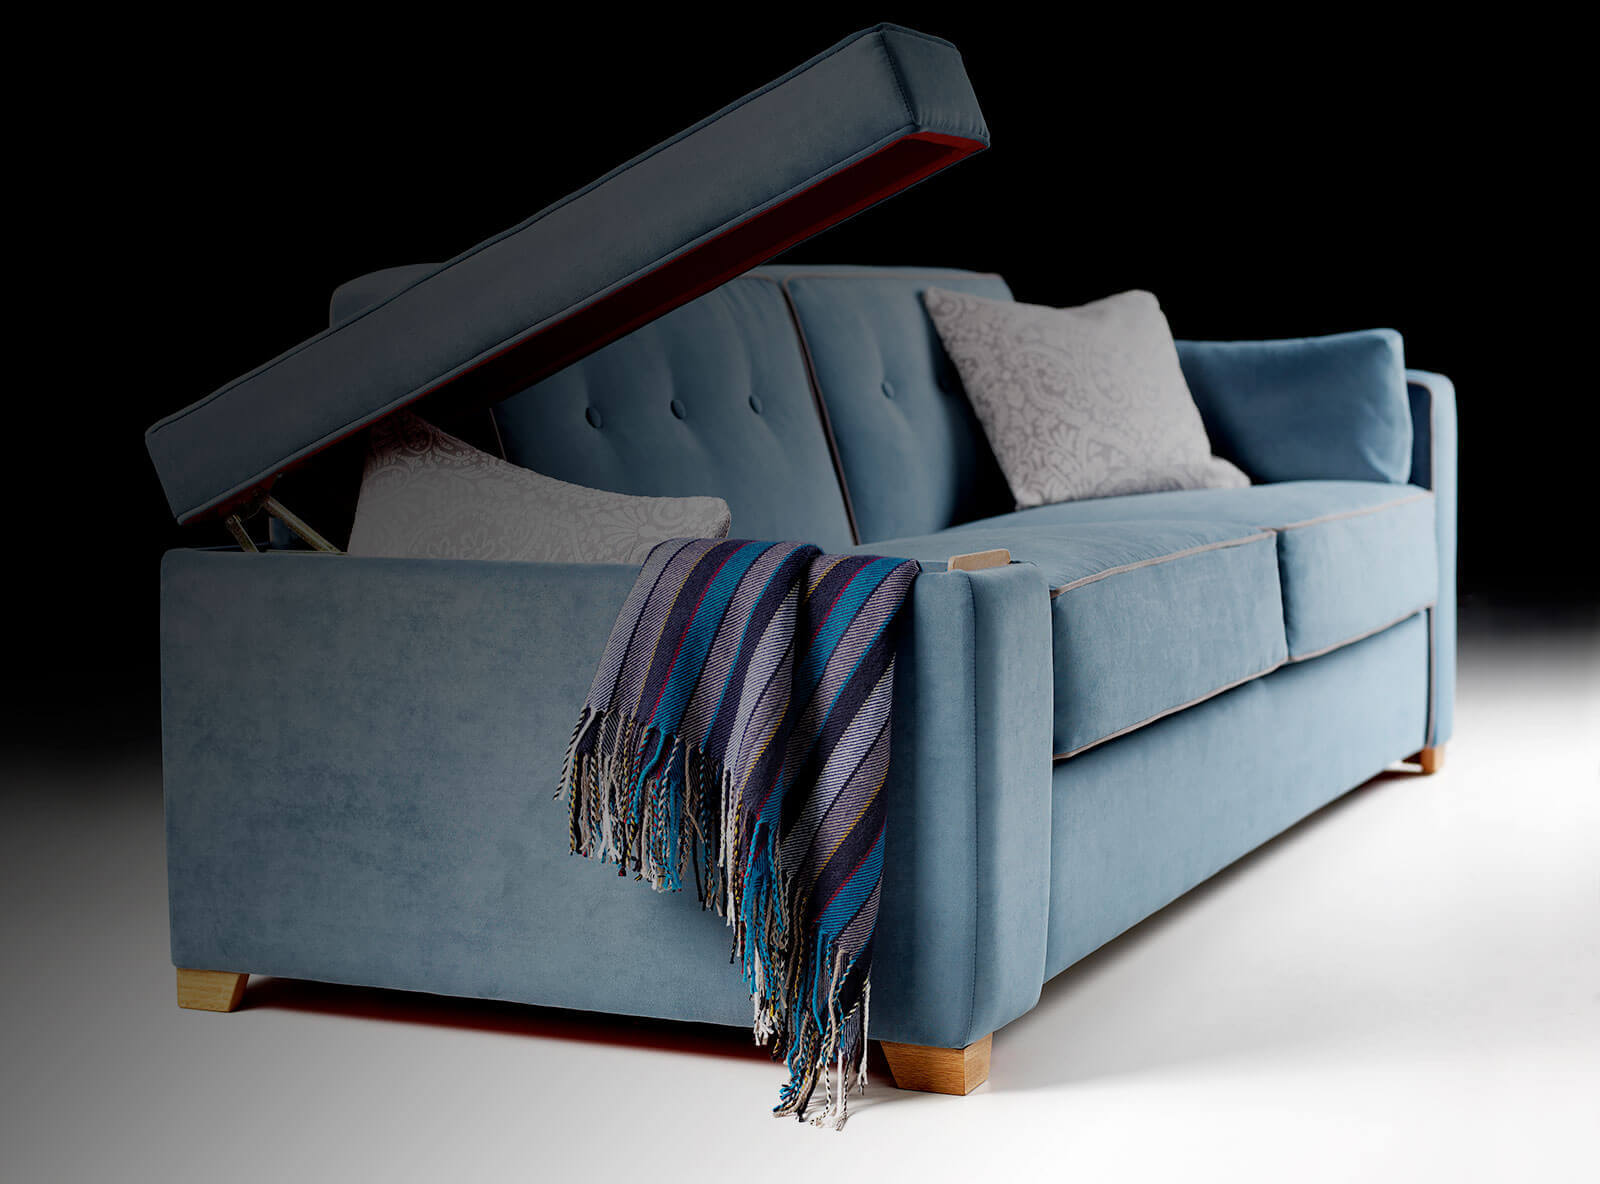 Sofa beds for every day use comfort day and night for Storage beds uk